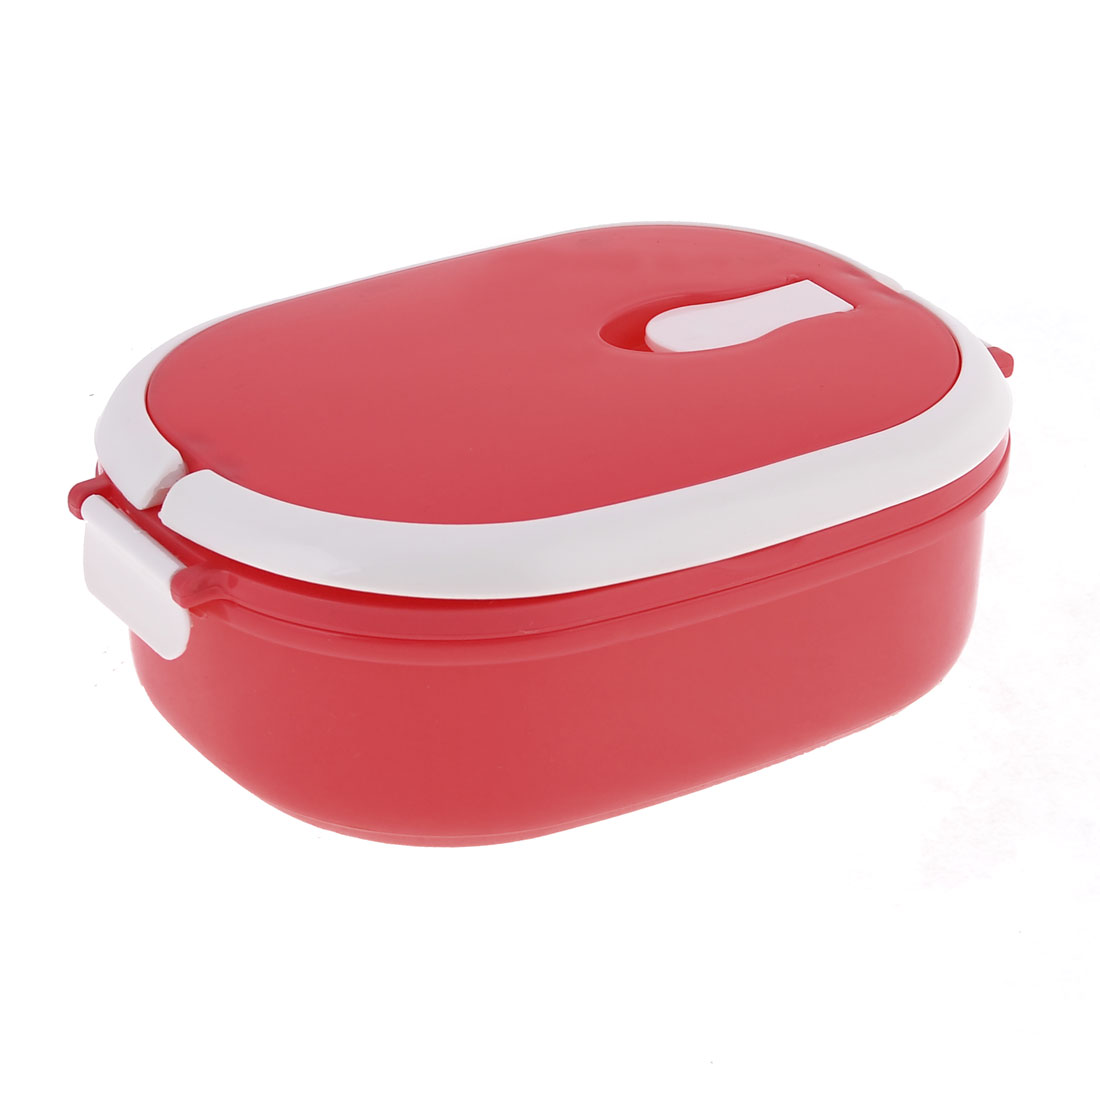 Home Kitchen Ellipse Shaped Plastic Container Case Lunch Box Red